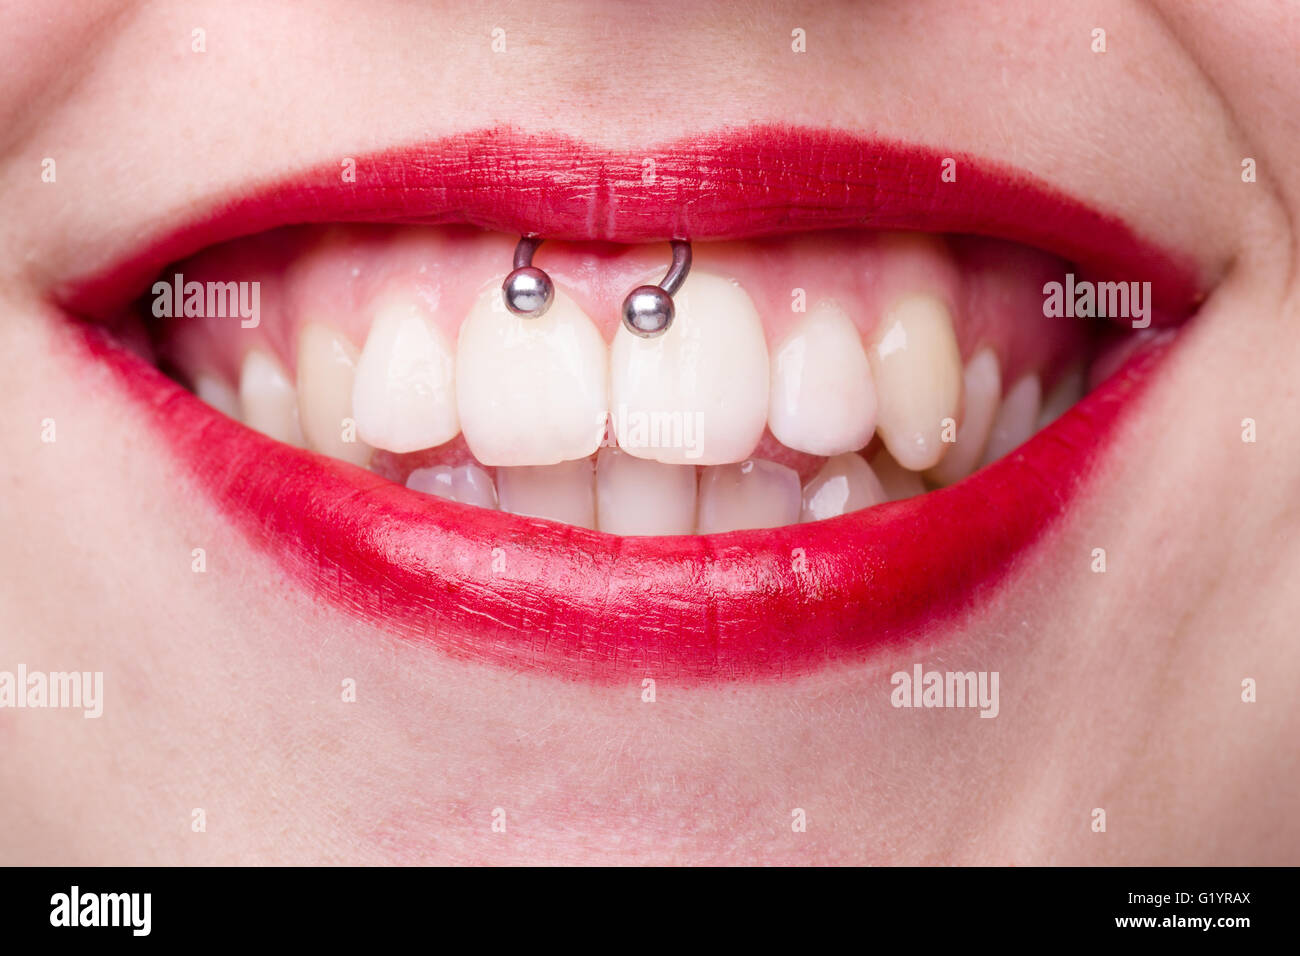 Smiley Piercing Detail With Smiling Woman S Mouth Stock Photo